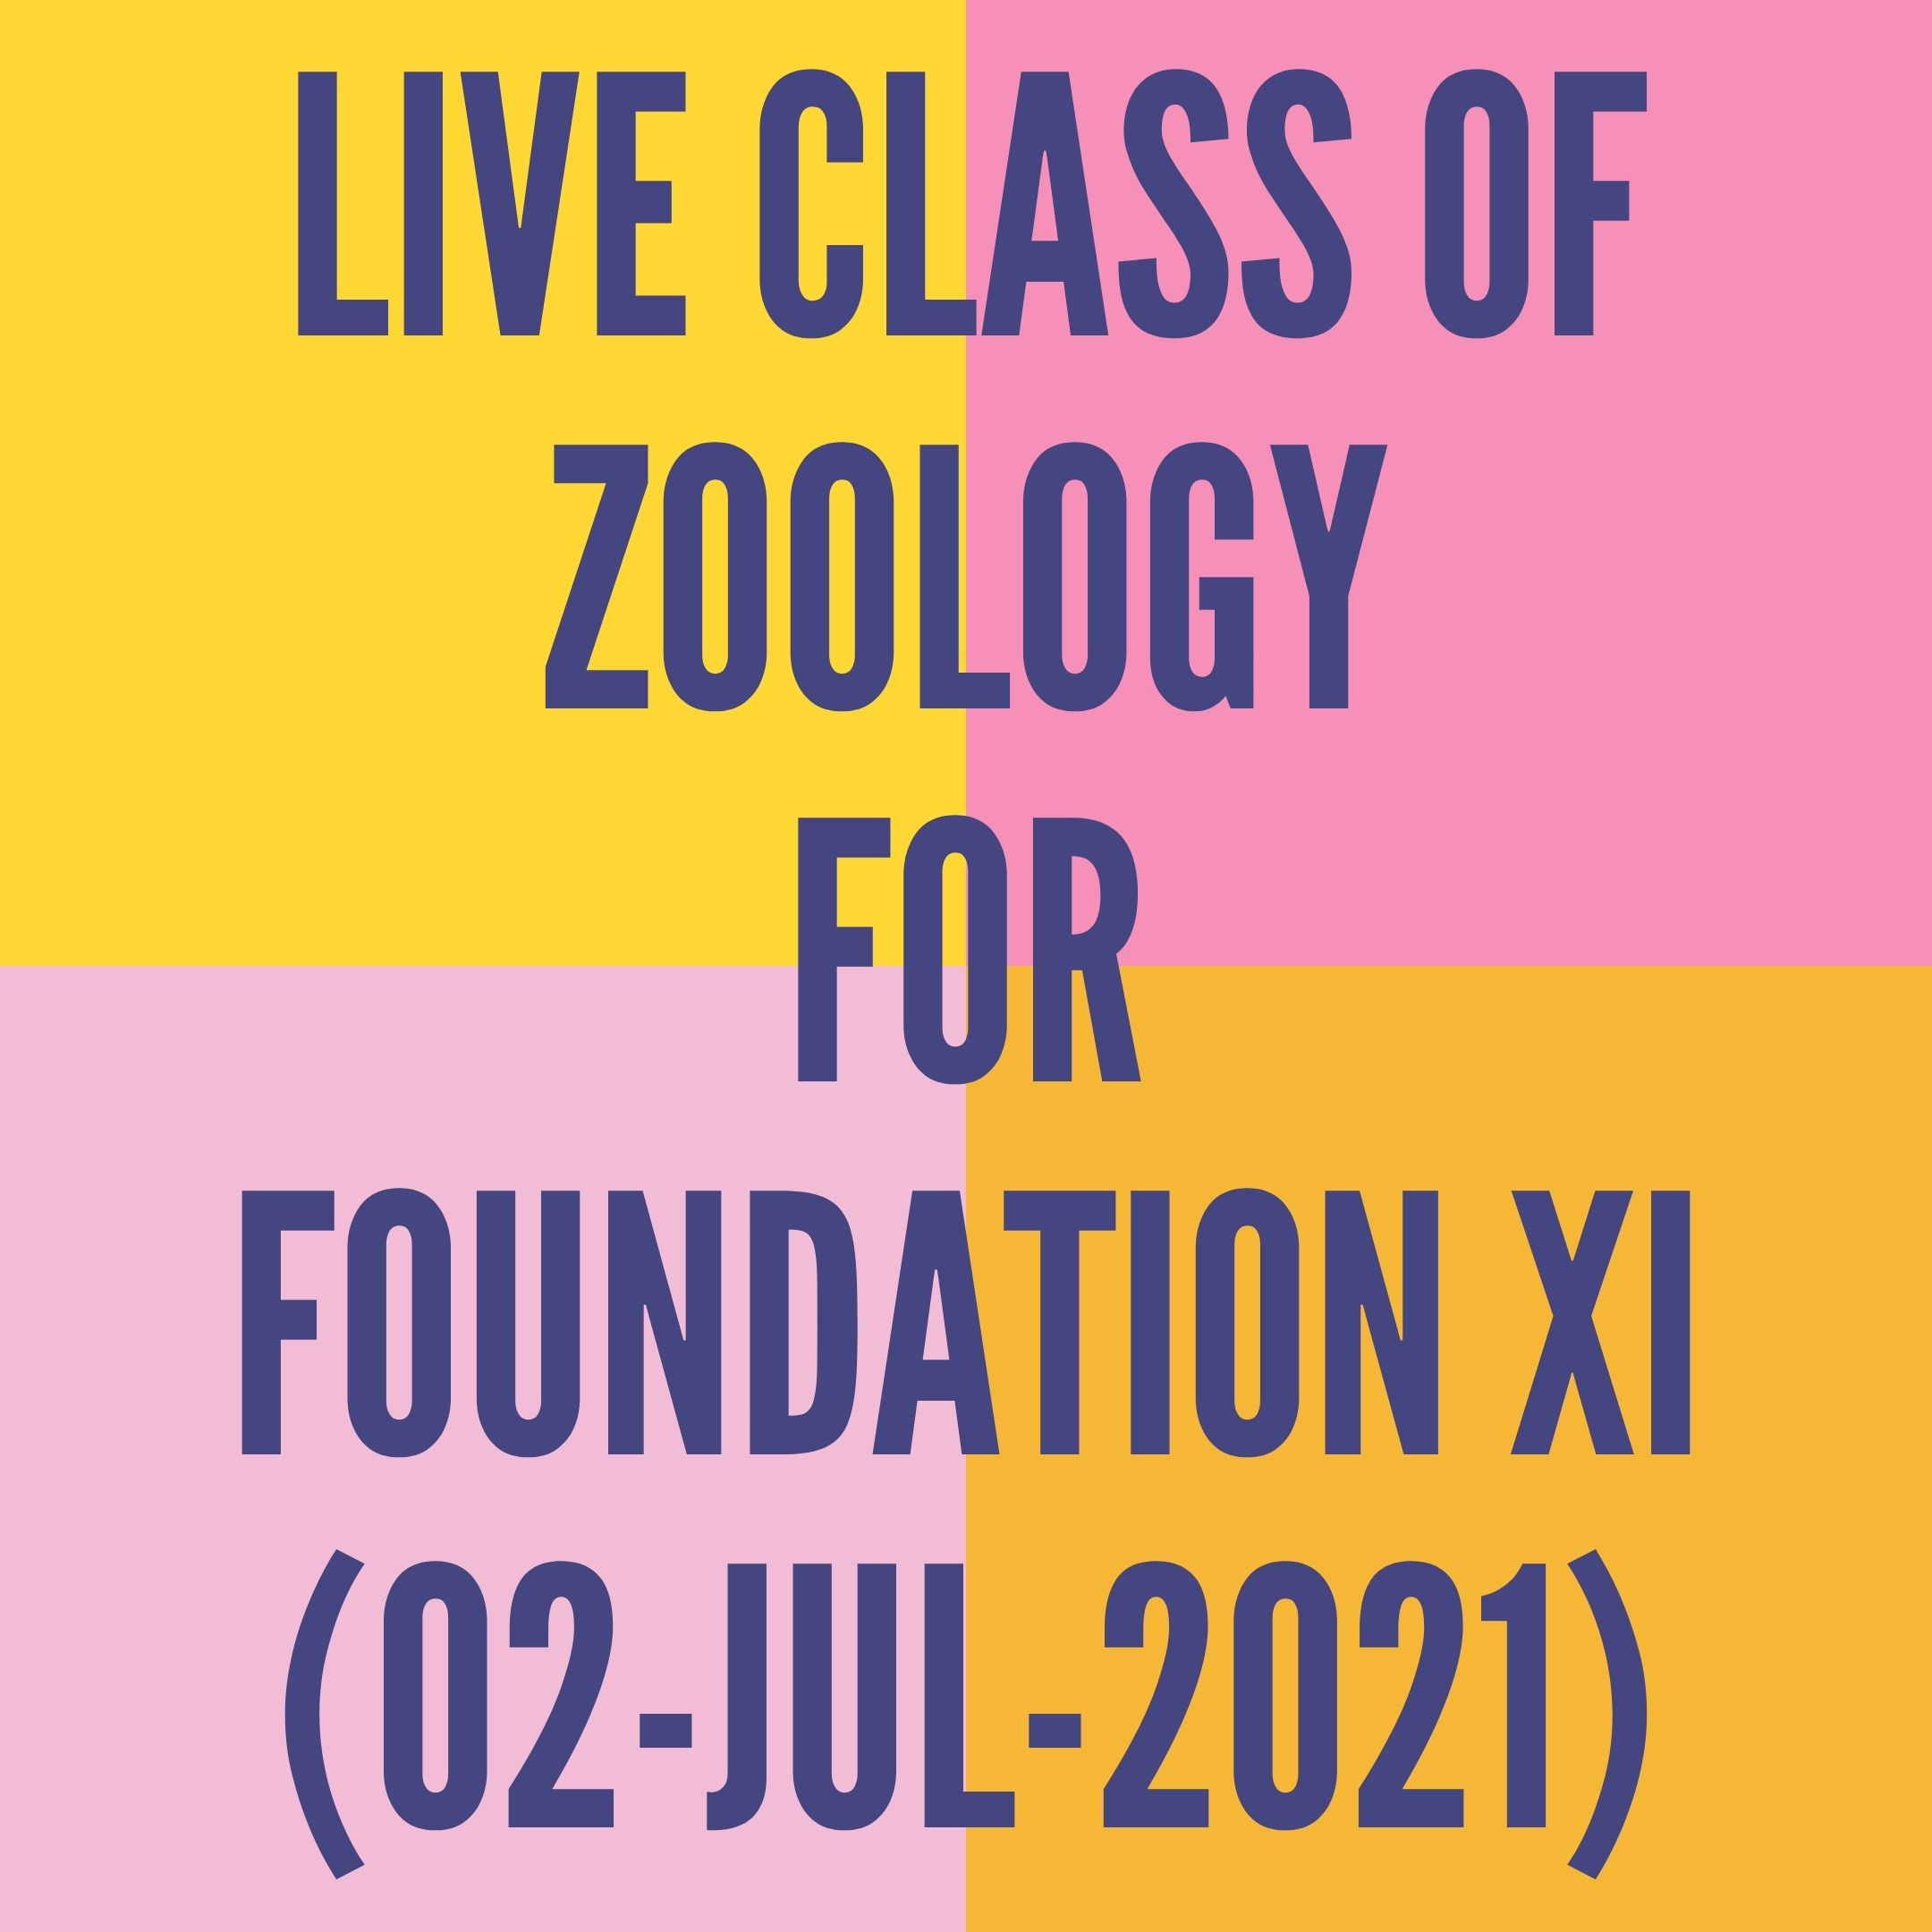 LIVE CLASS OF ZOOLOGY FOR FOUNDATION XI (02-JUL-2021) DIGESTIVE SYSTEM